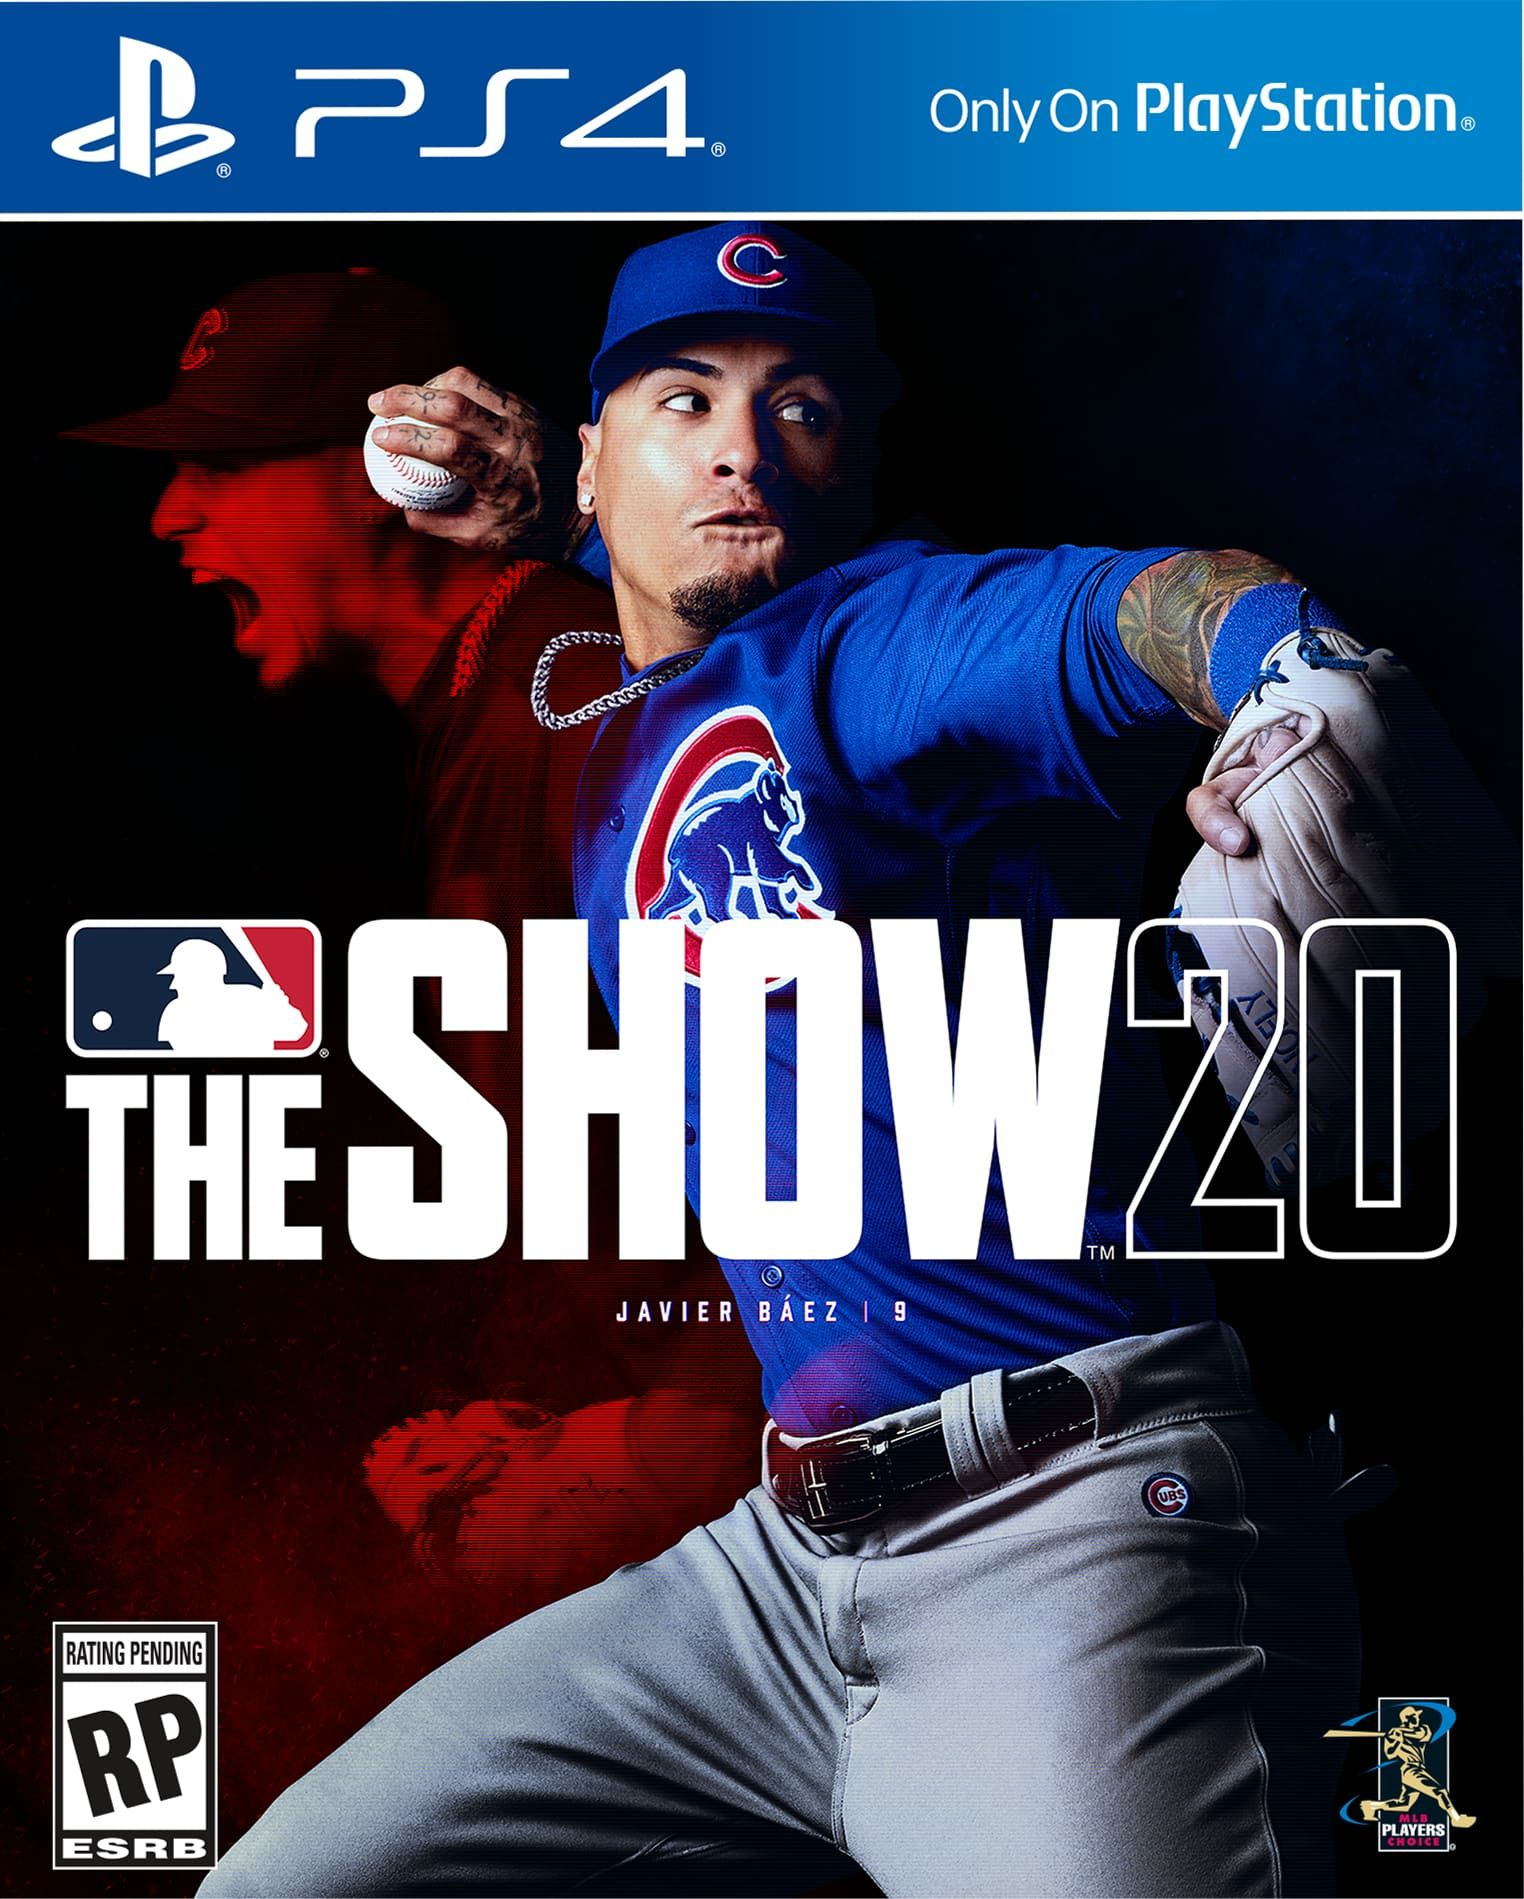 Cubs Javier Baez Announced As Mlb The Show 20 Cover Athlete Sports Gamers Online Mlb The Show Playstation Ps4 Exclusives